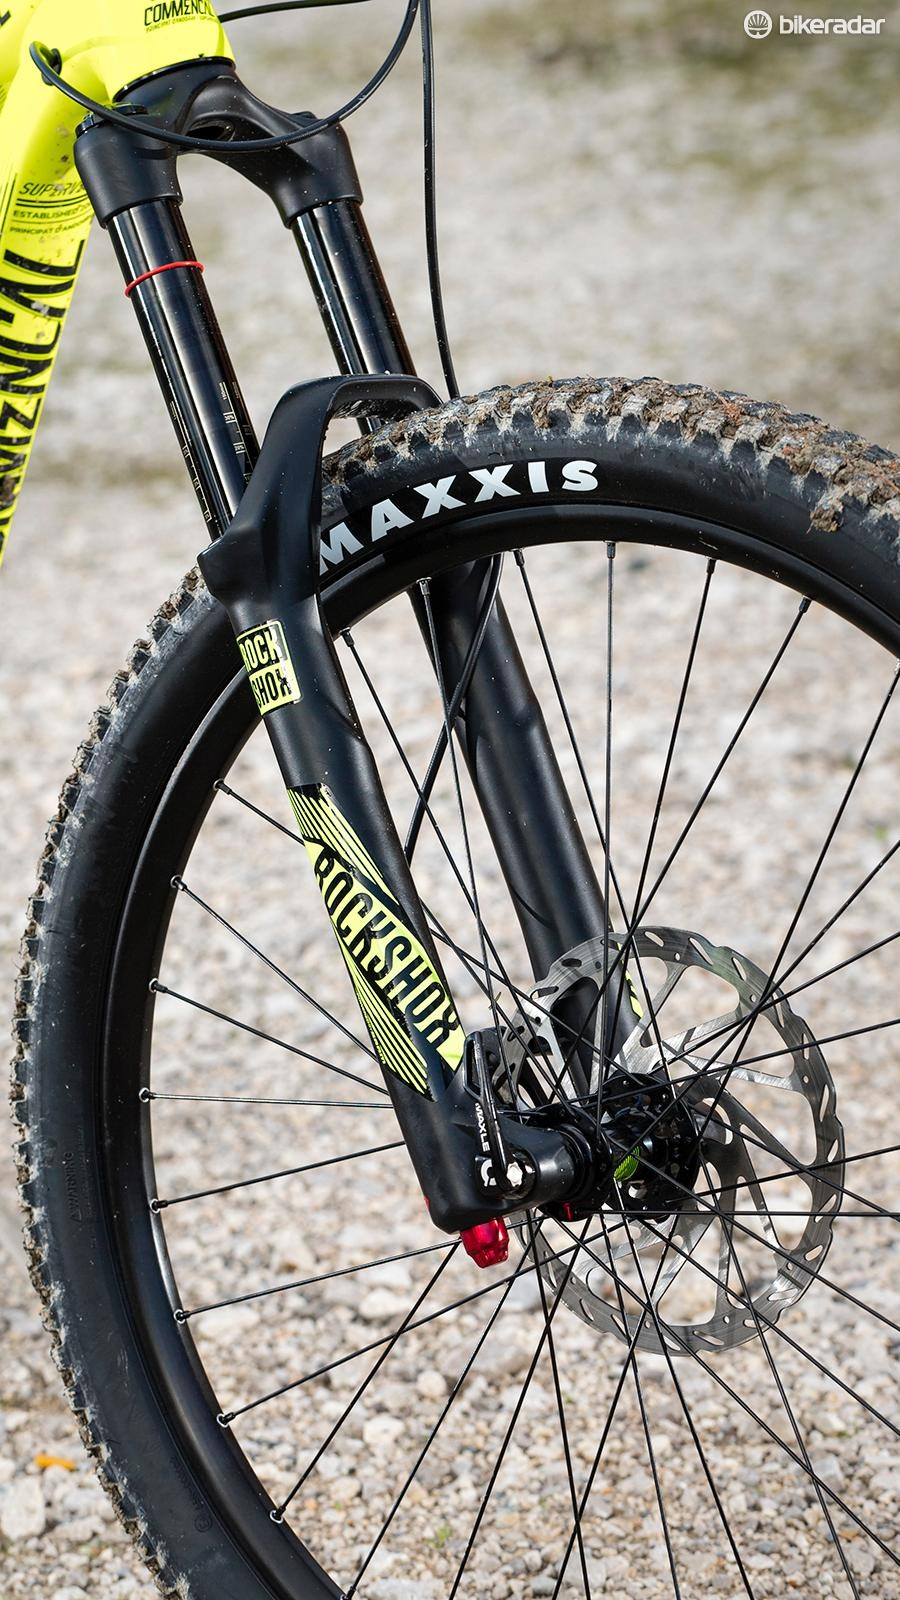 RockShox' Yari fork shares many features with the hard-charging Lyrik